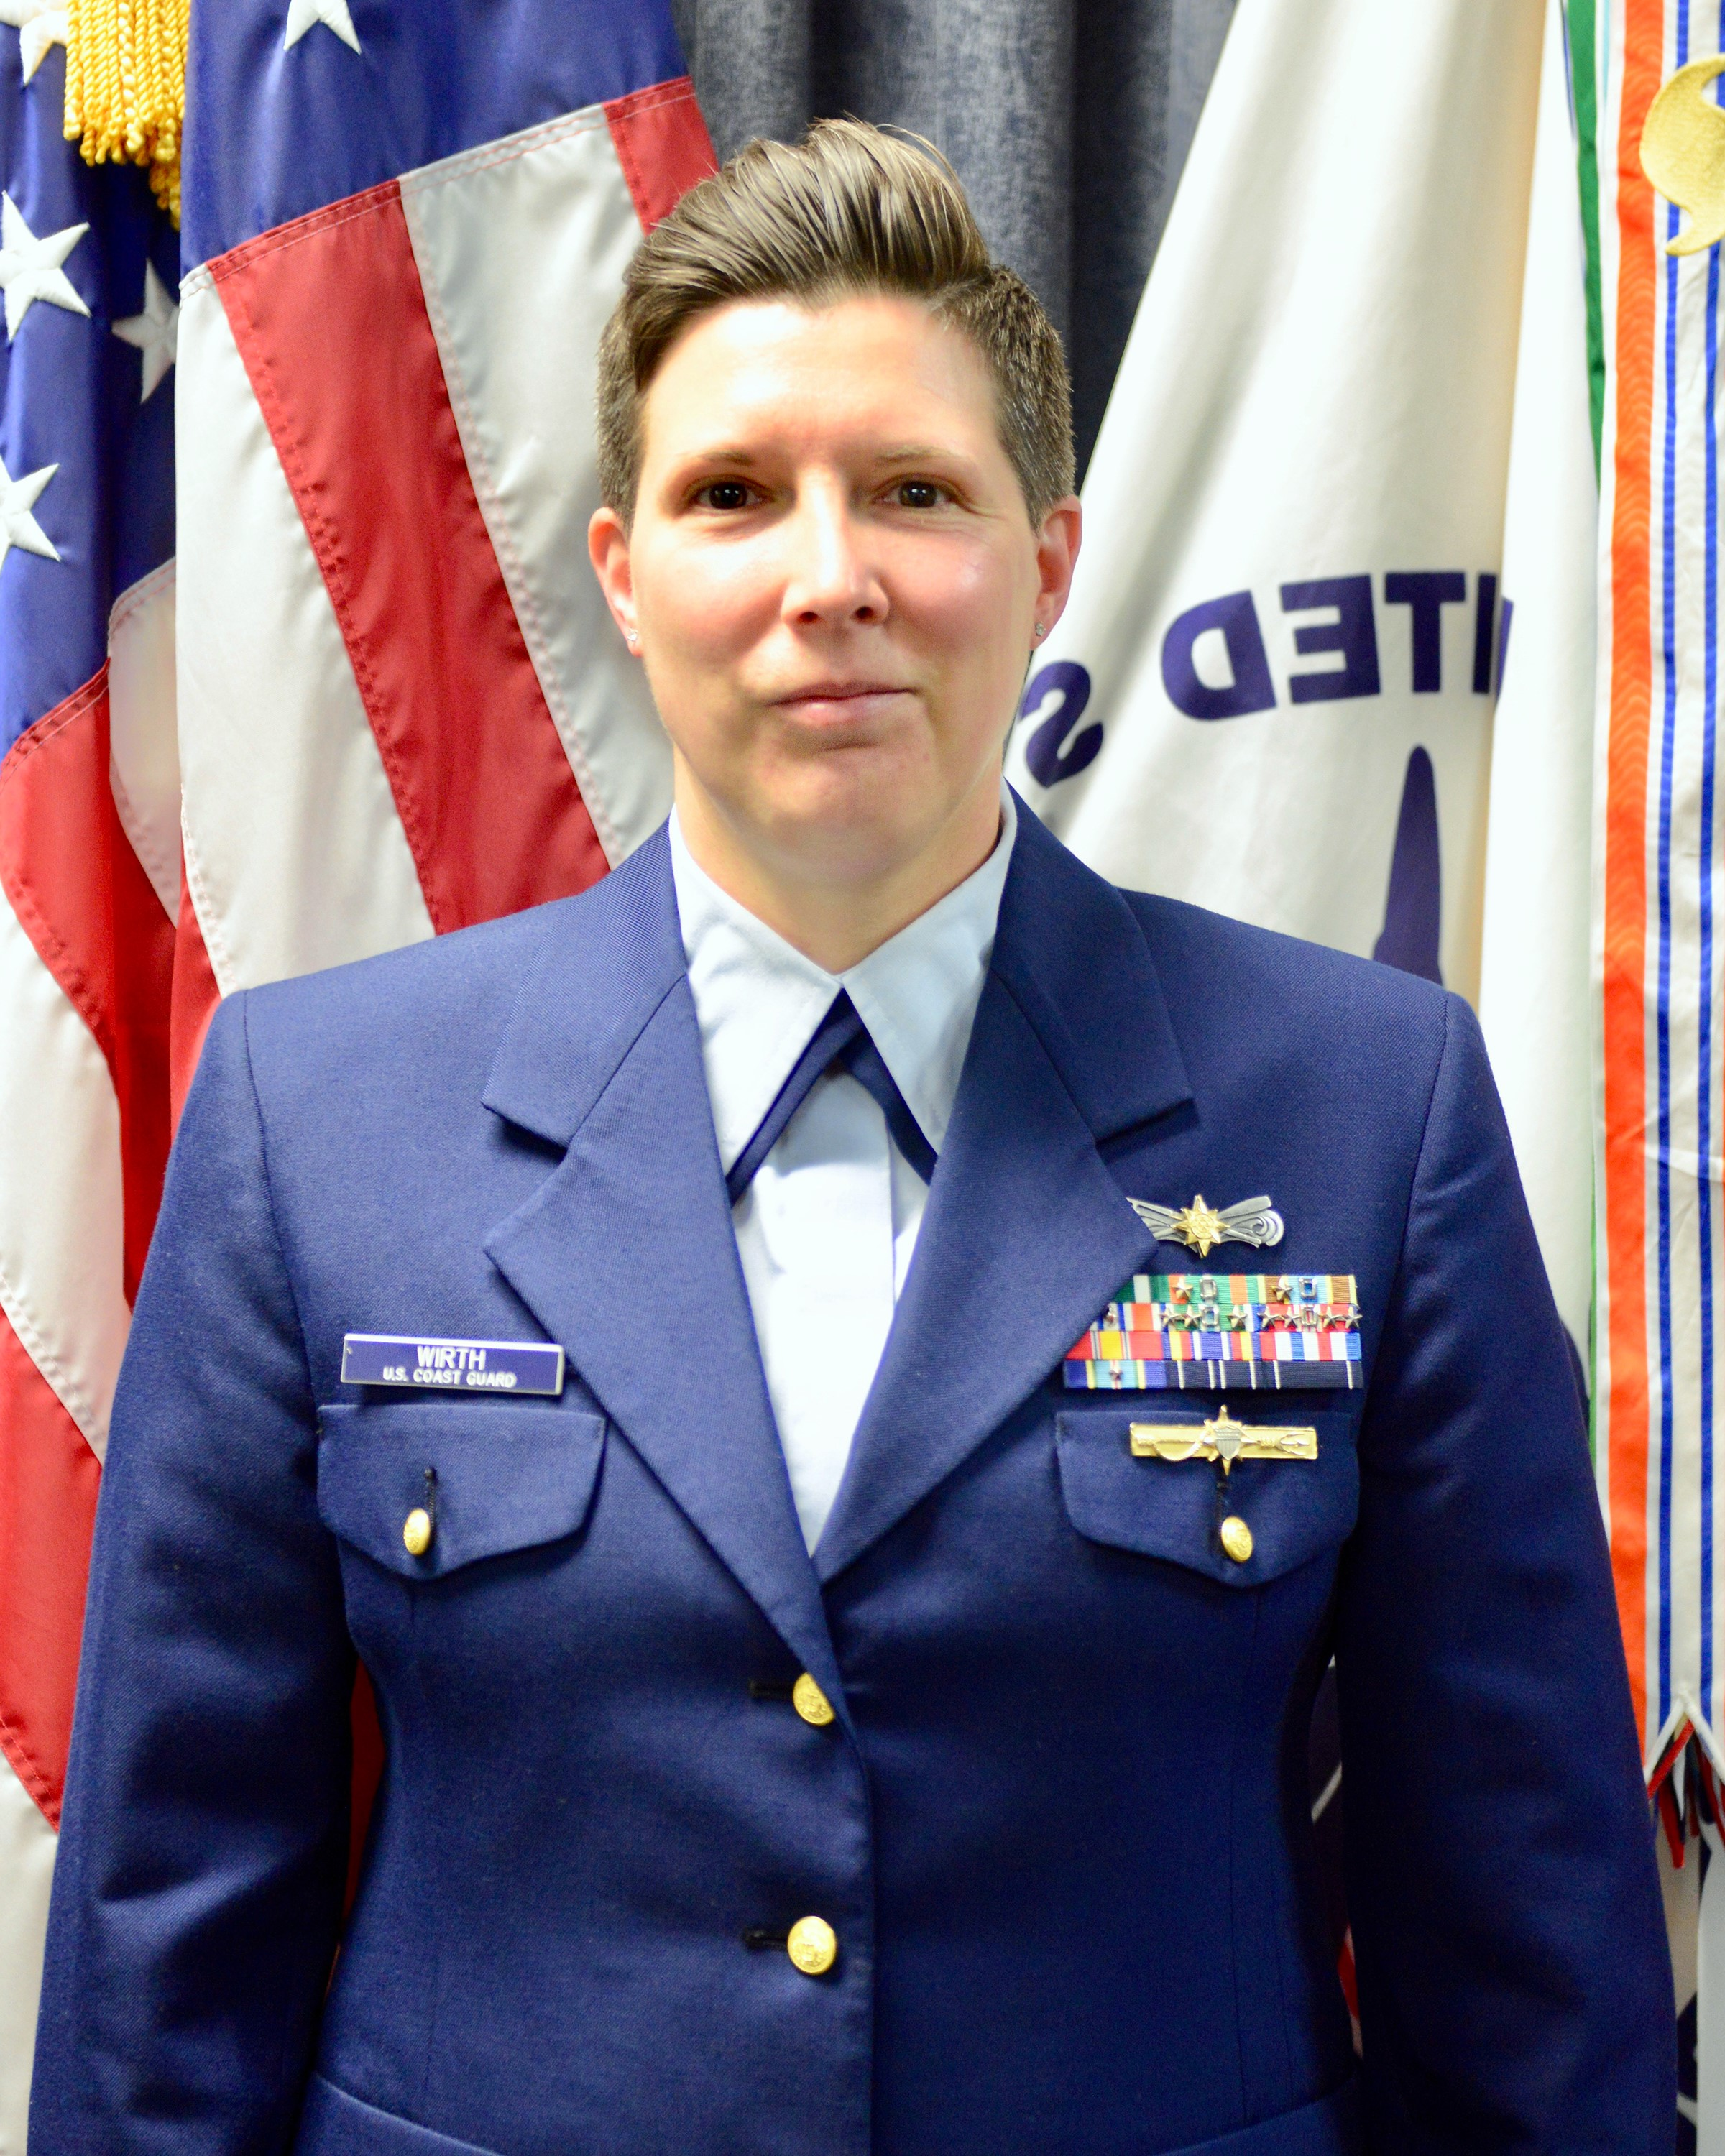 Photo of Commander Wirth